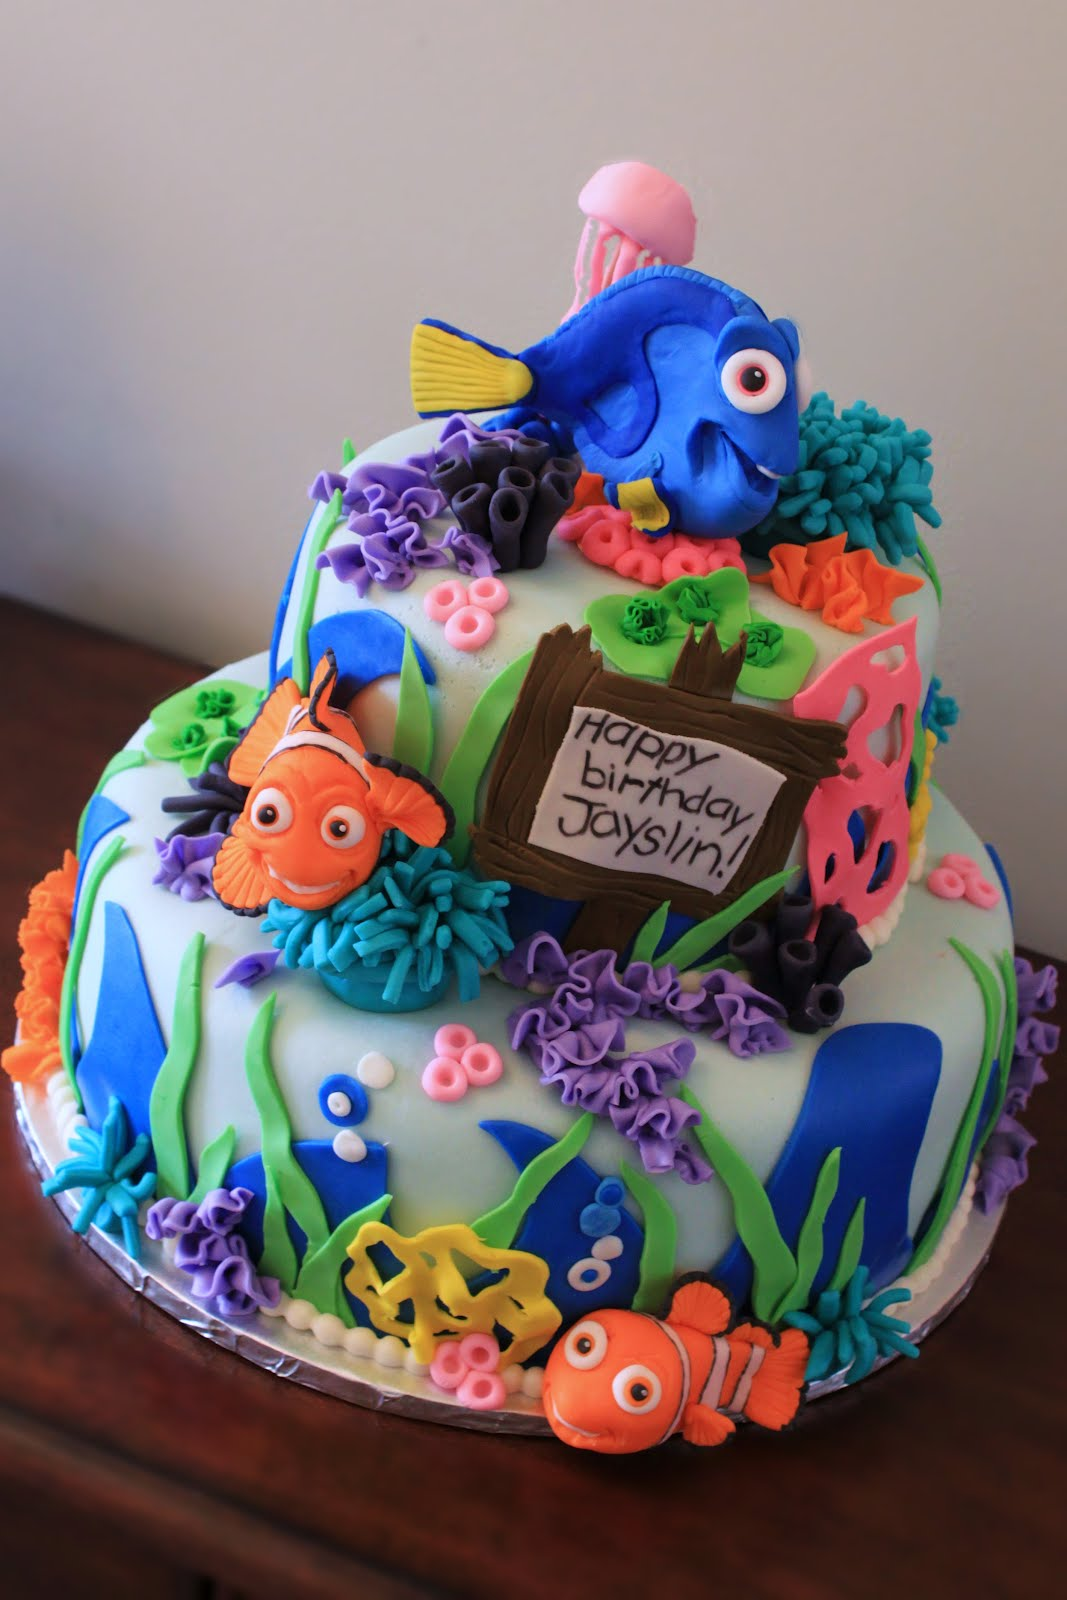 Cake Decorations Nemo : 1000+ images about Finding Nemo Cakes on Pinterest ...